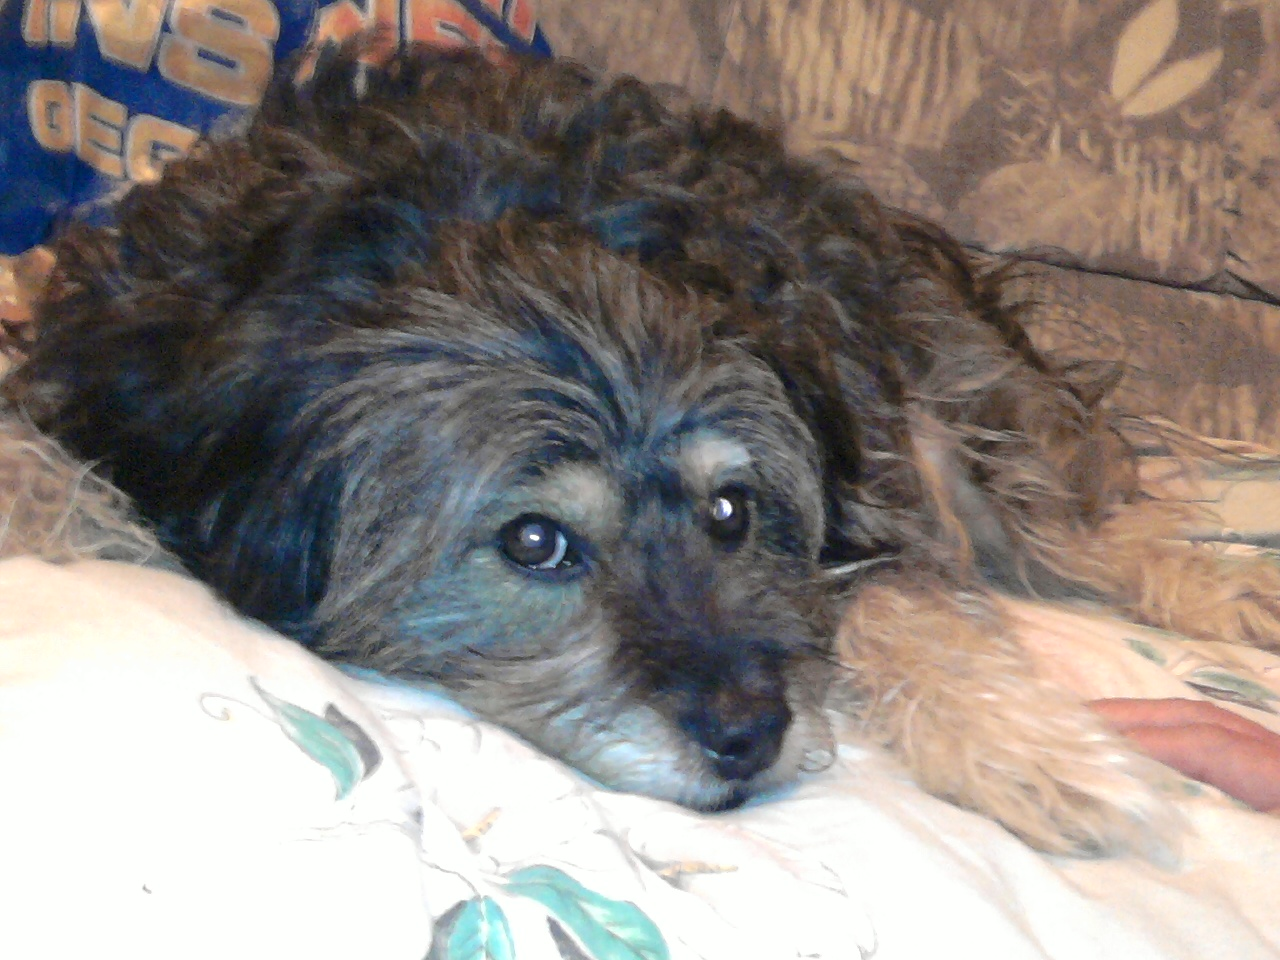 Image SEO all 2: Terrier mix, post 15